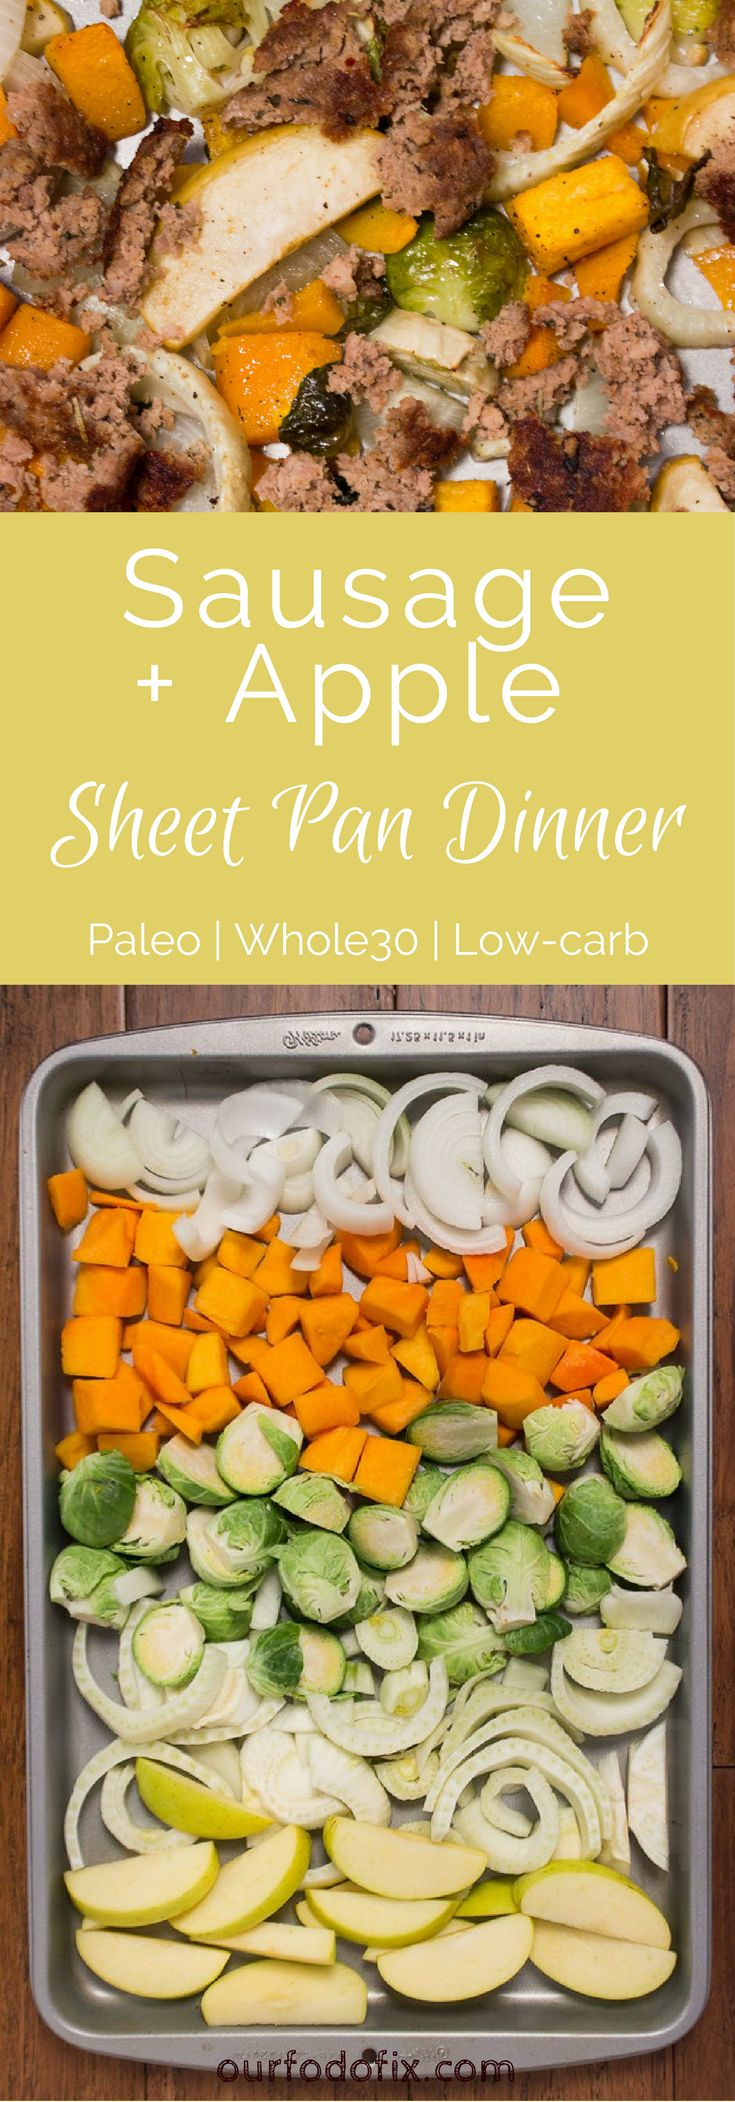 An entire fall dinner entirely made in one pan. Paleo recipes   Whole30 recipes   Dinner recipes   One pan meals   Quick dinner   Fall recipes   Easy meals   Pork recipes   Vegan option   Vegetable recipes   Simple recipes